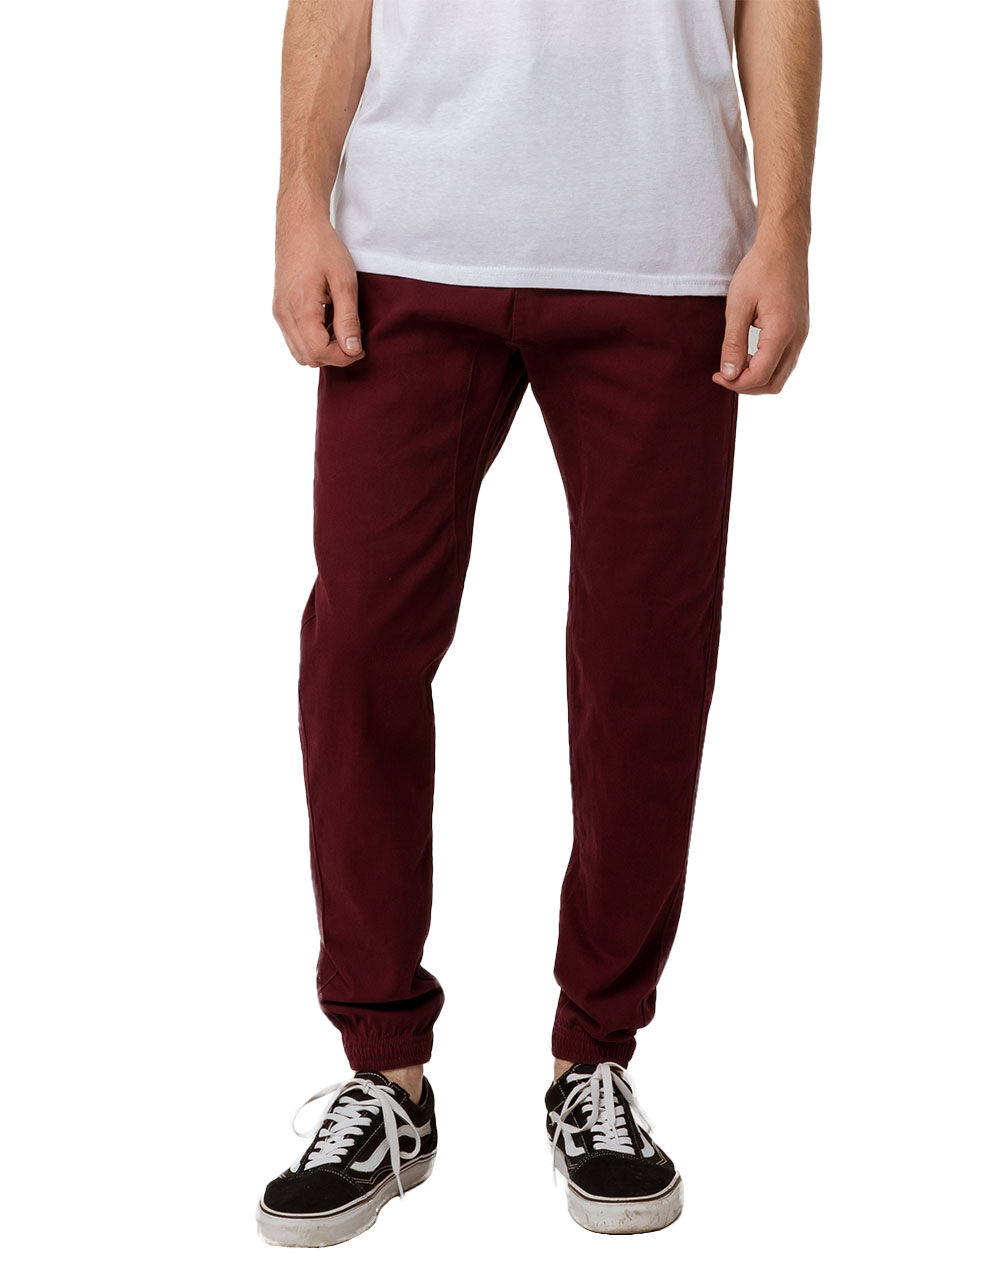 Image of CHARLES AND A HALF CABERNET TWILL JOGGER PANTS